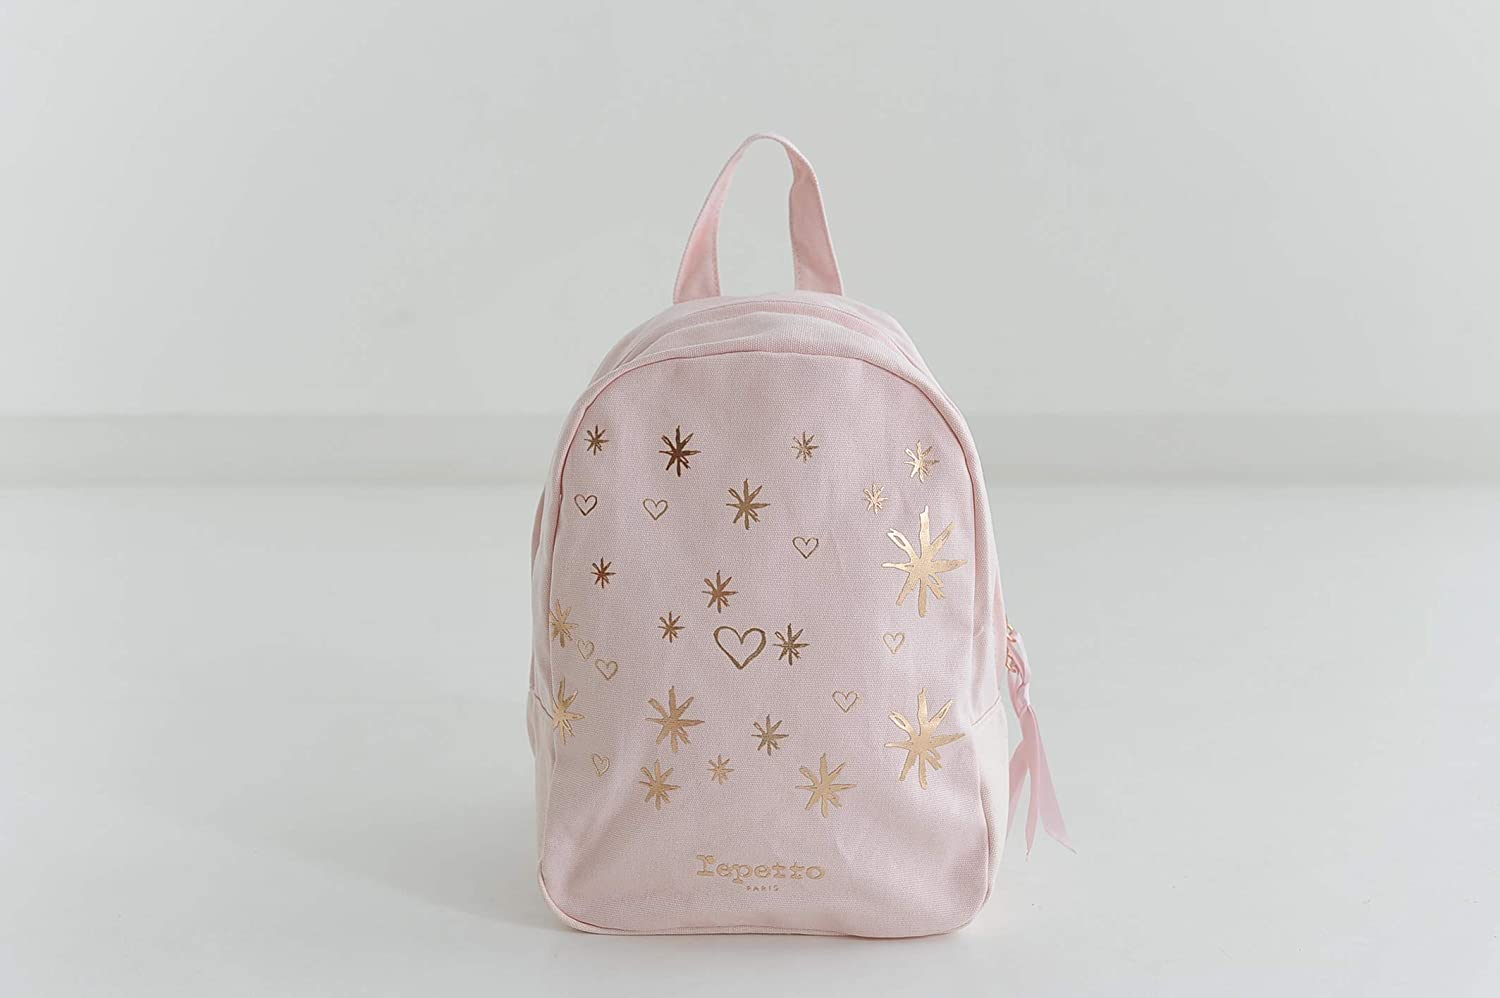 repetto STARS backpack バレエバックパック(50301/B0301T) B07PNLPKLL 73(pale pink)